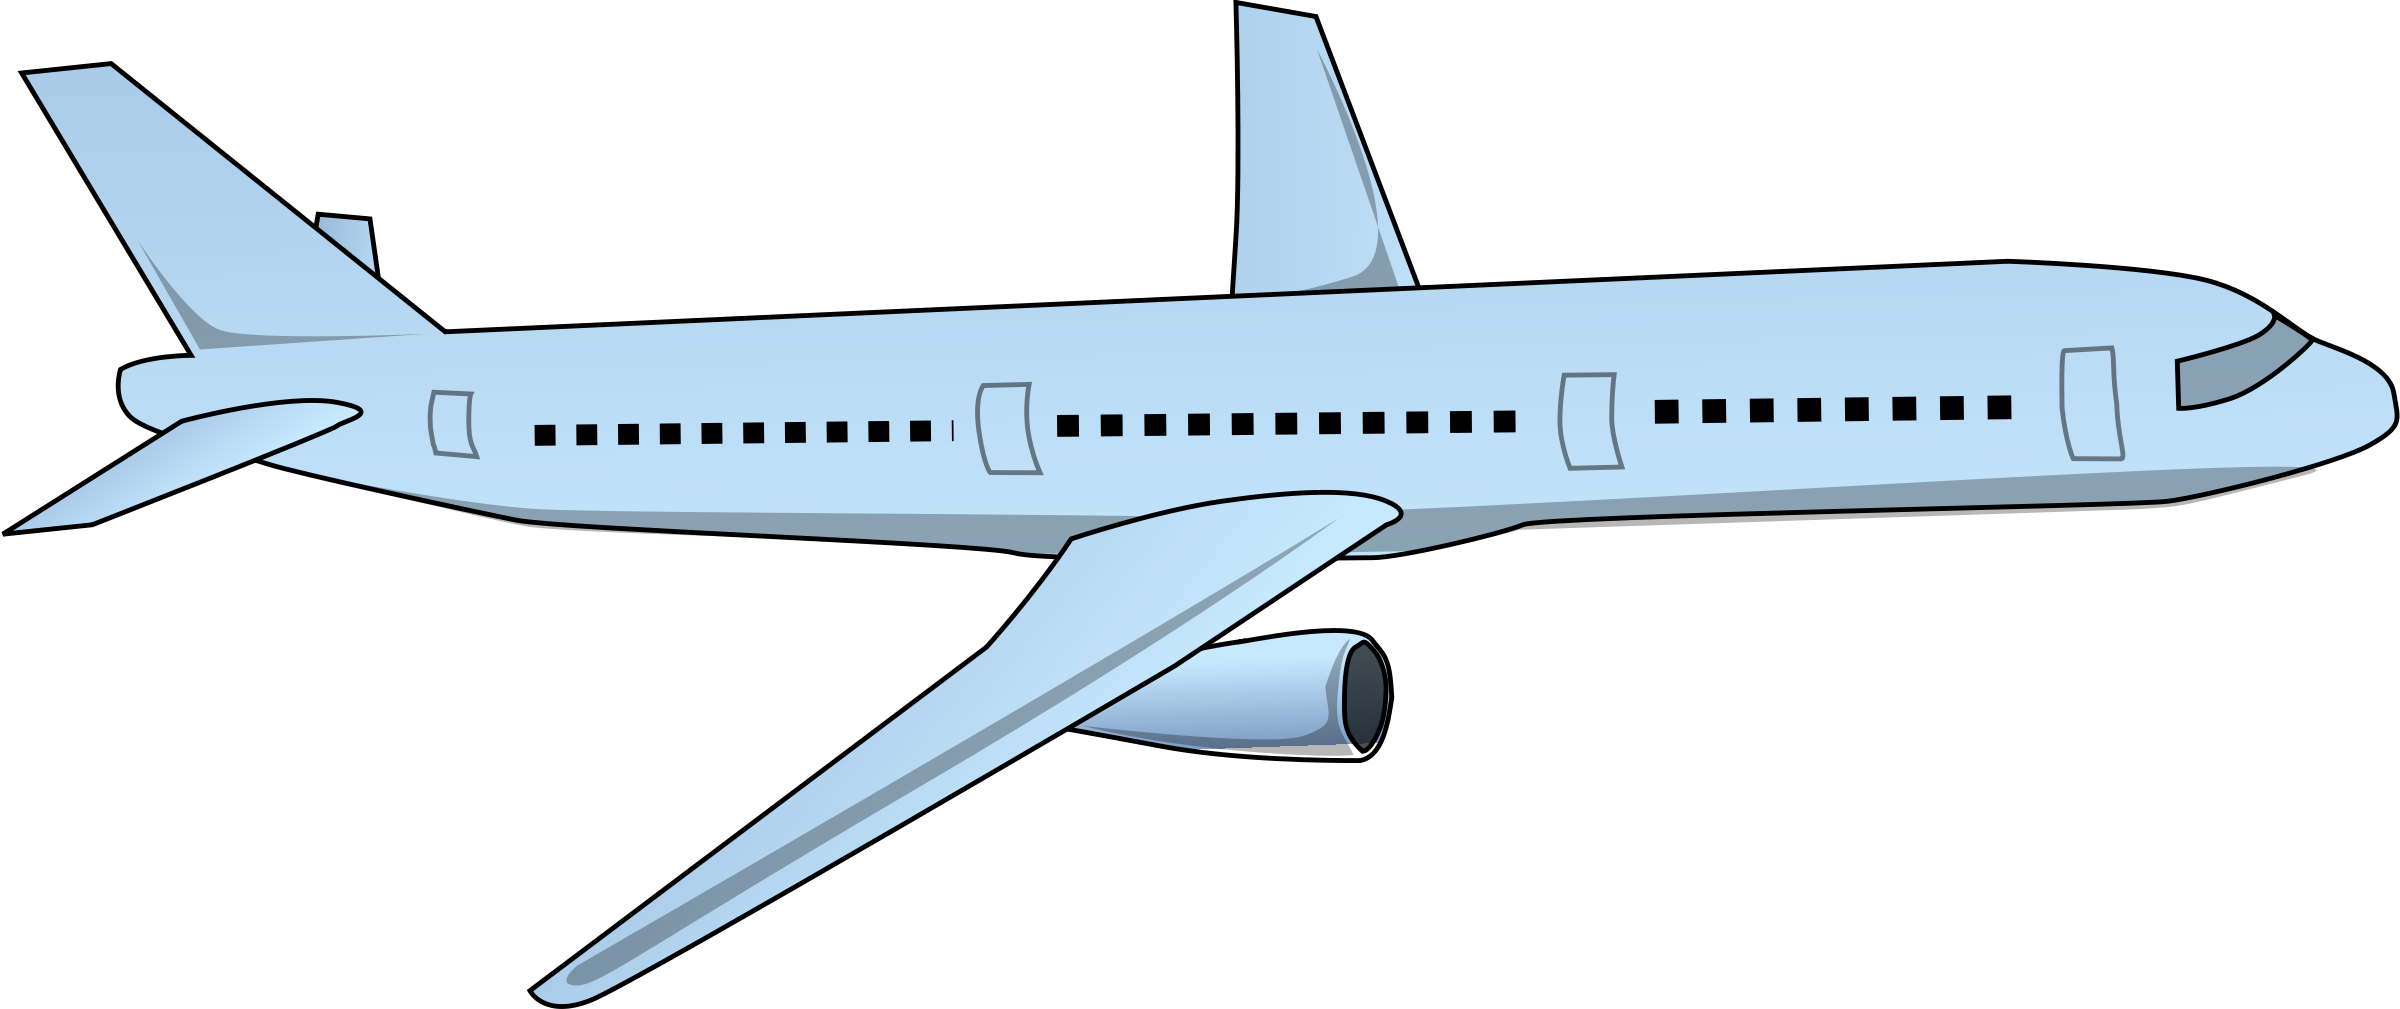 This is a graphic of Airplane Printable intended for banner